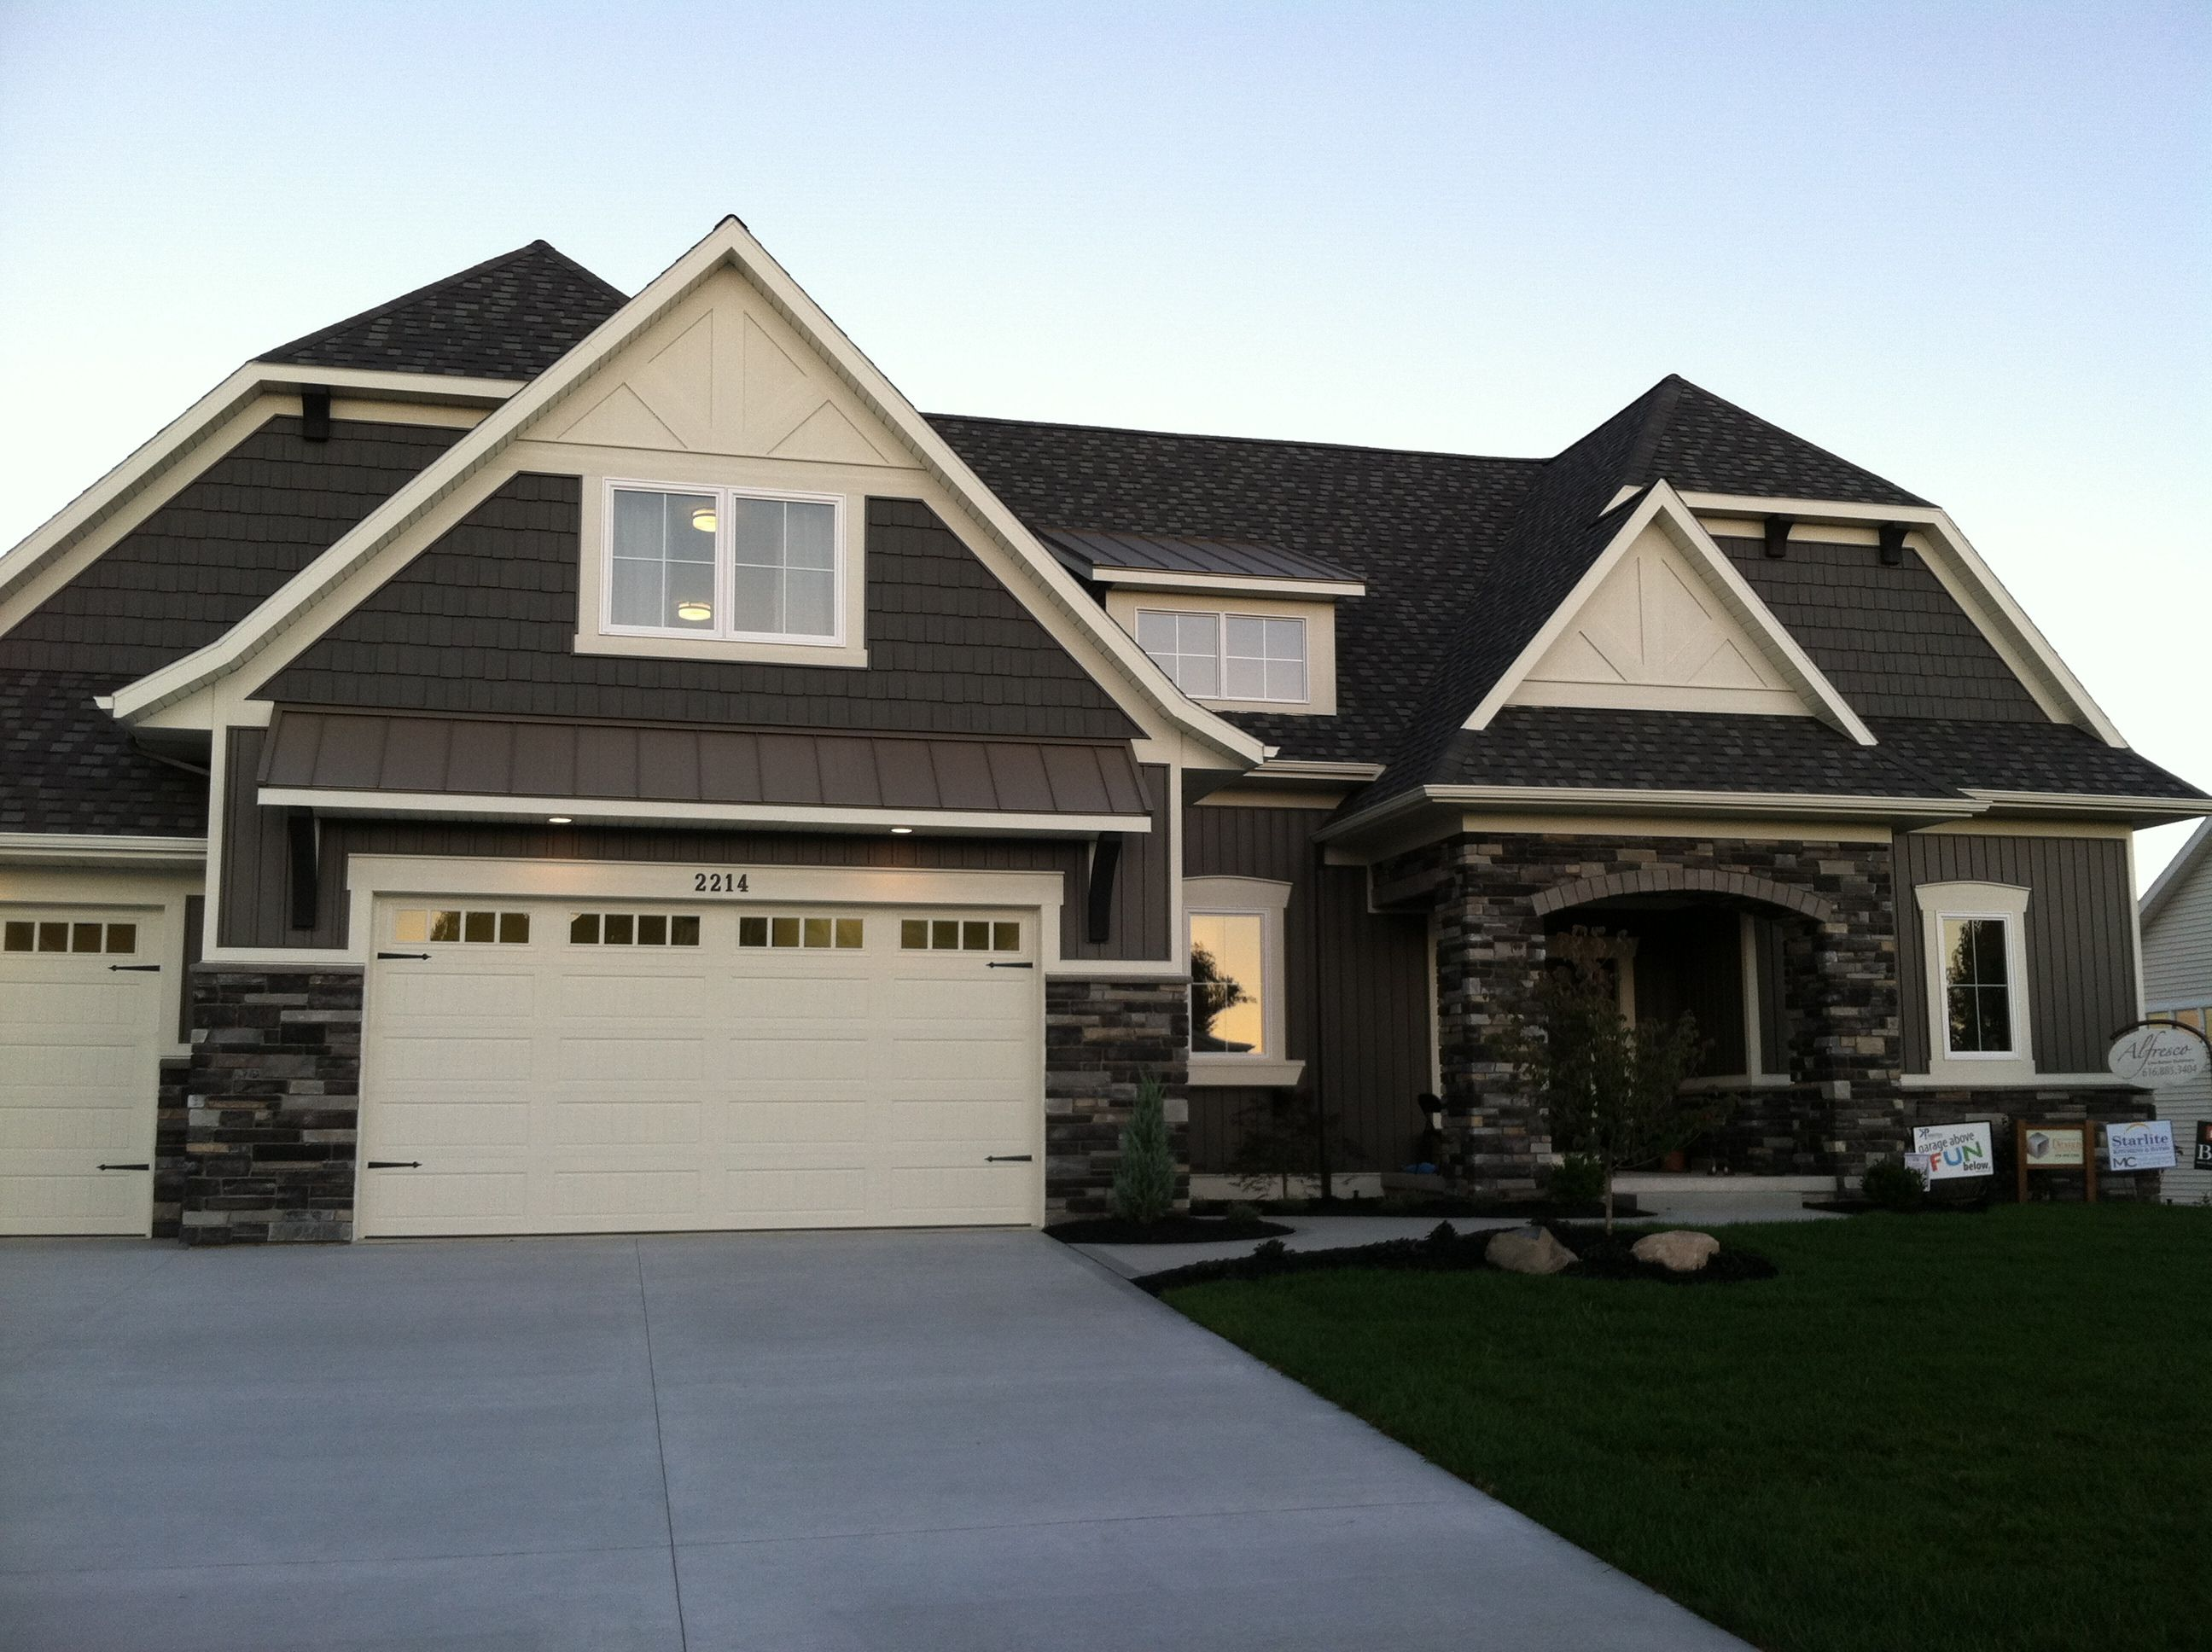 Awesome exterior home color schemes - Roof house color combinations ...